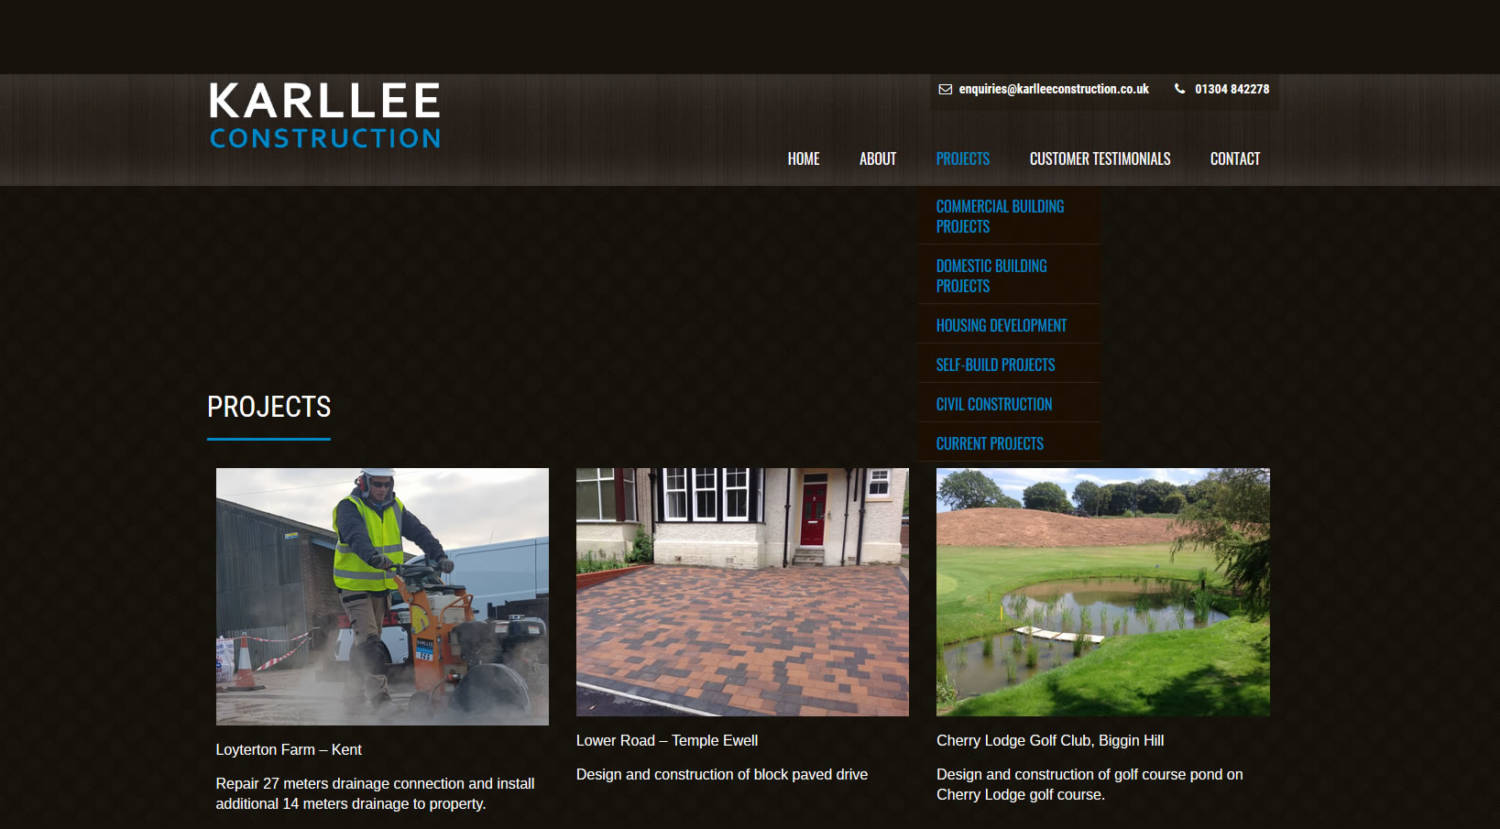 karllee new wordpress website design